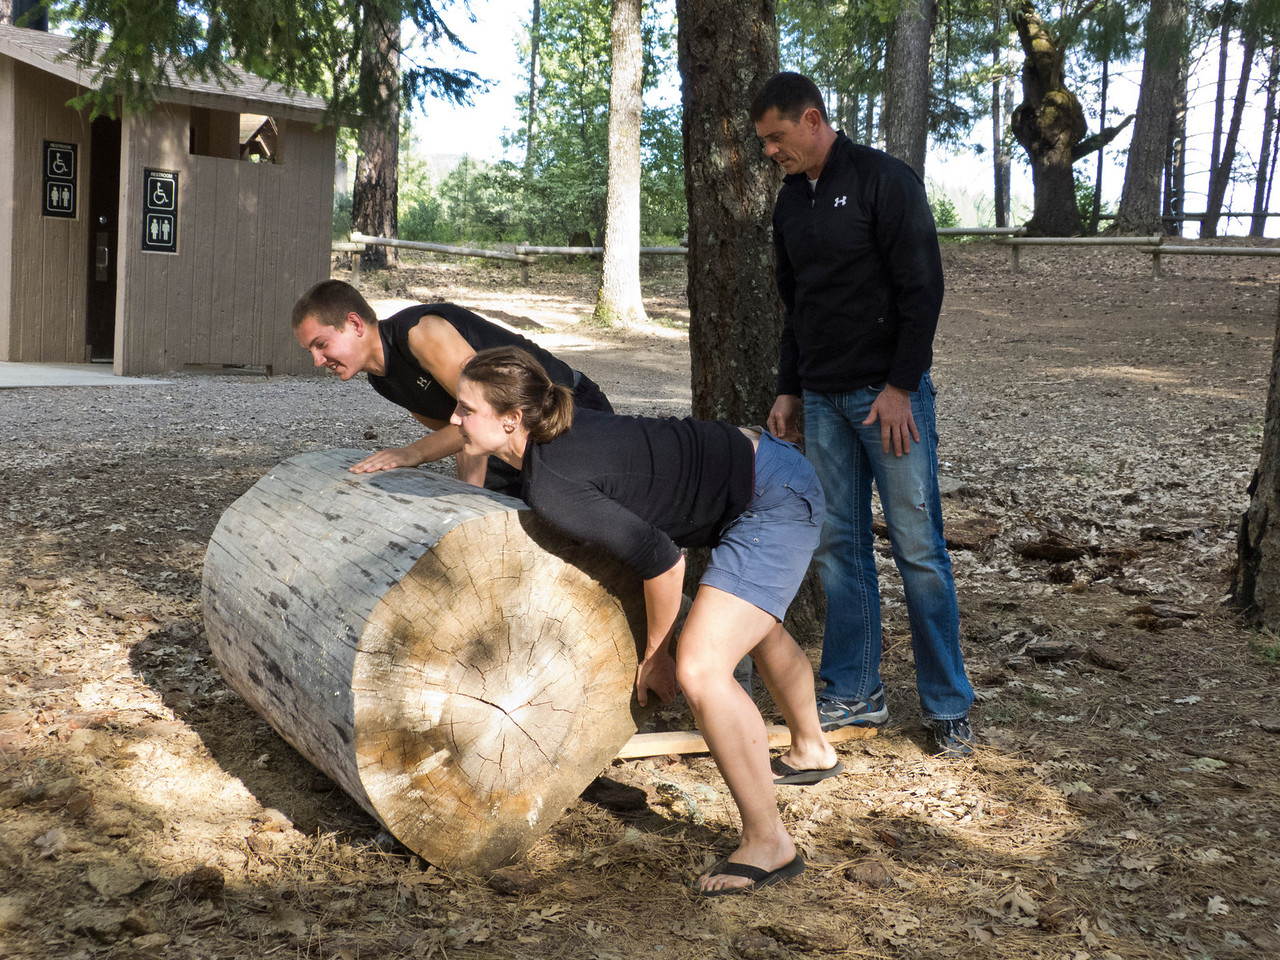 The traditional Rolling of the Oversized Log ceremony begins